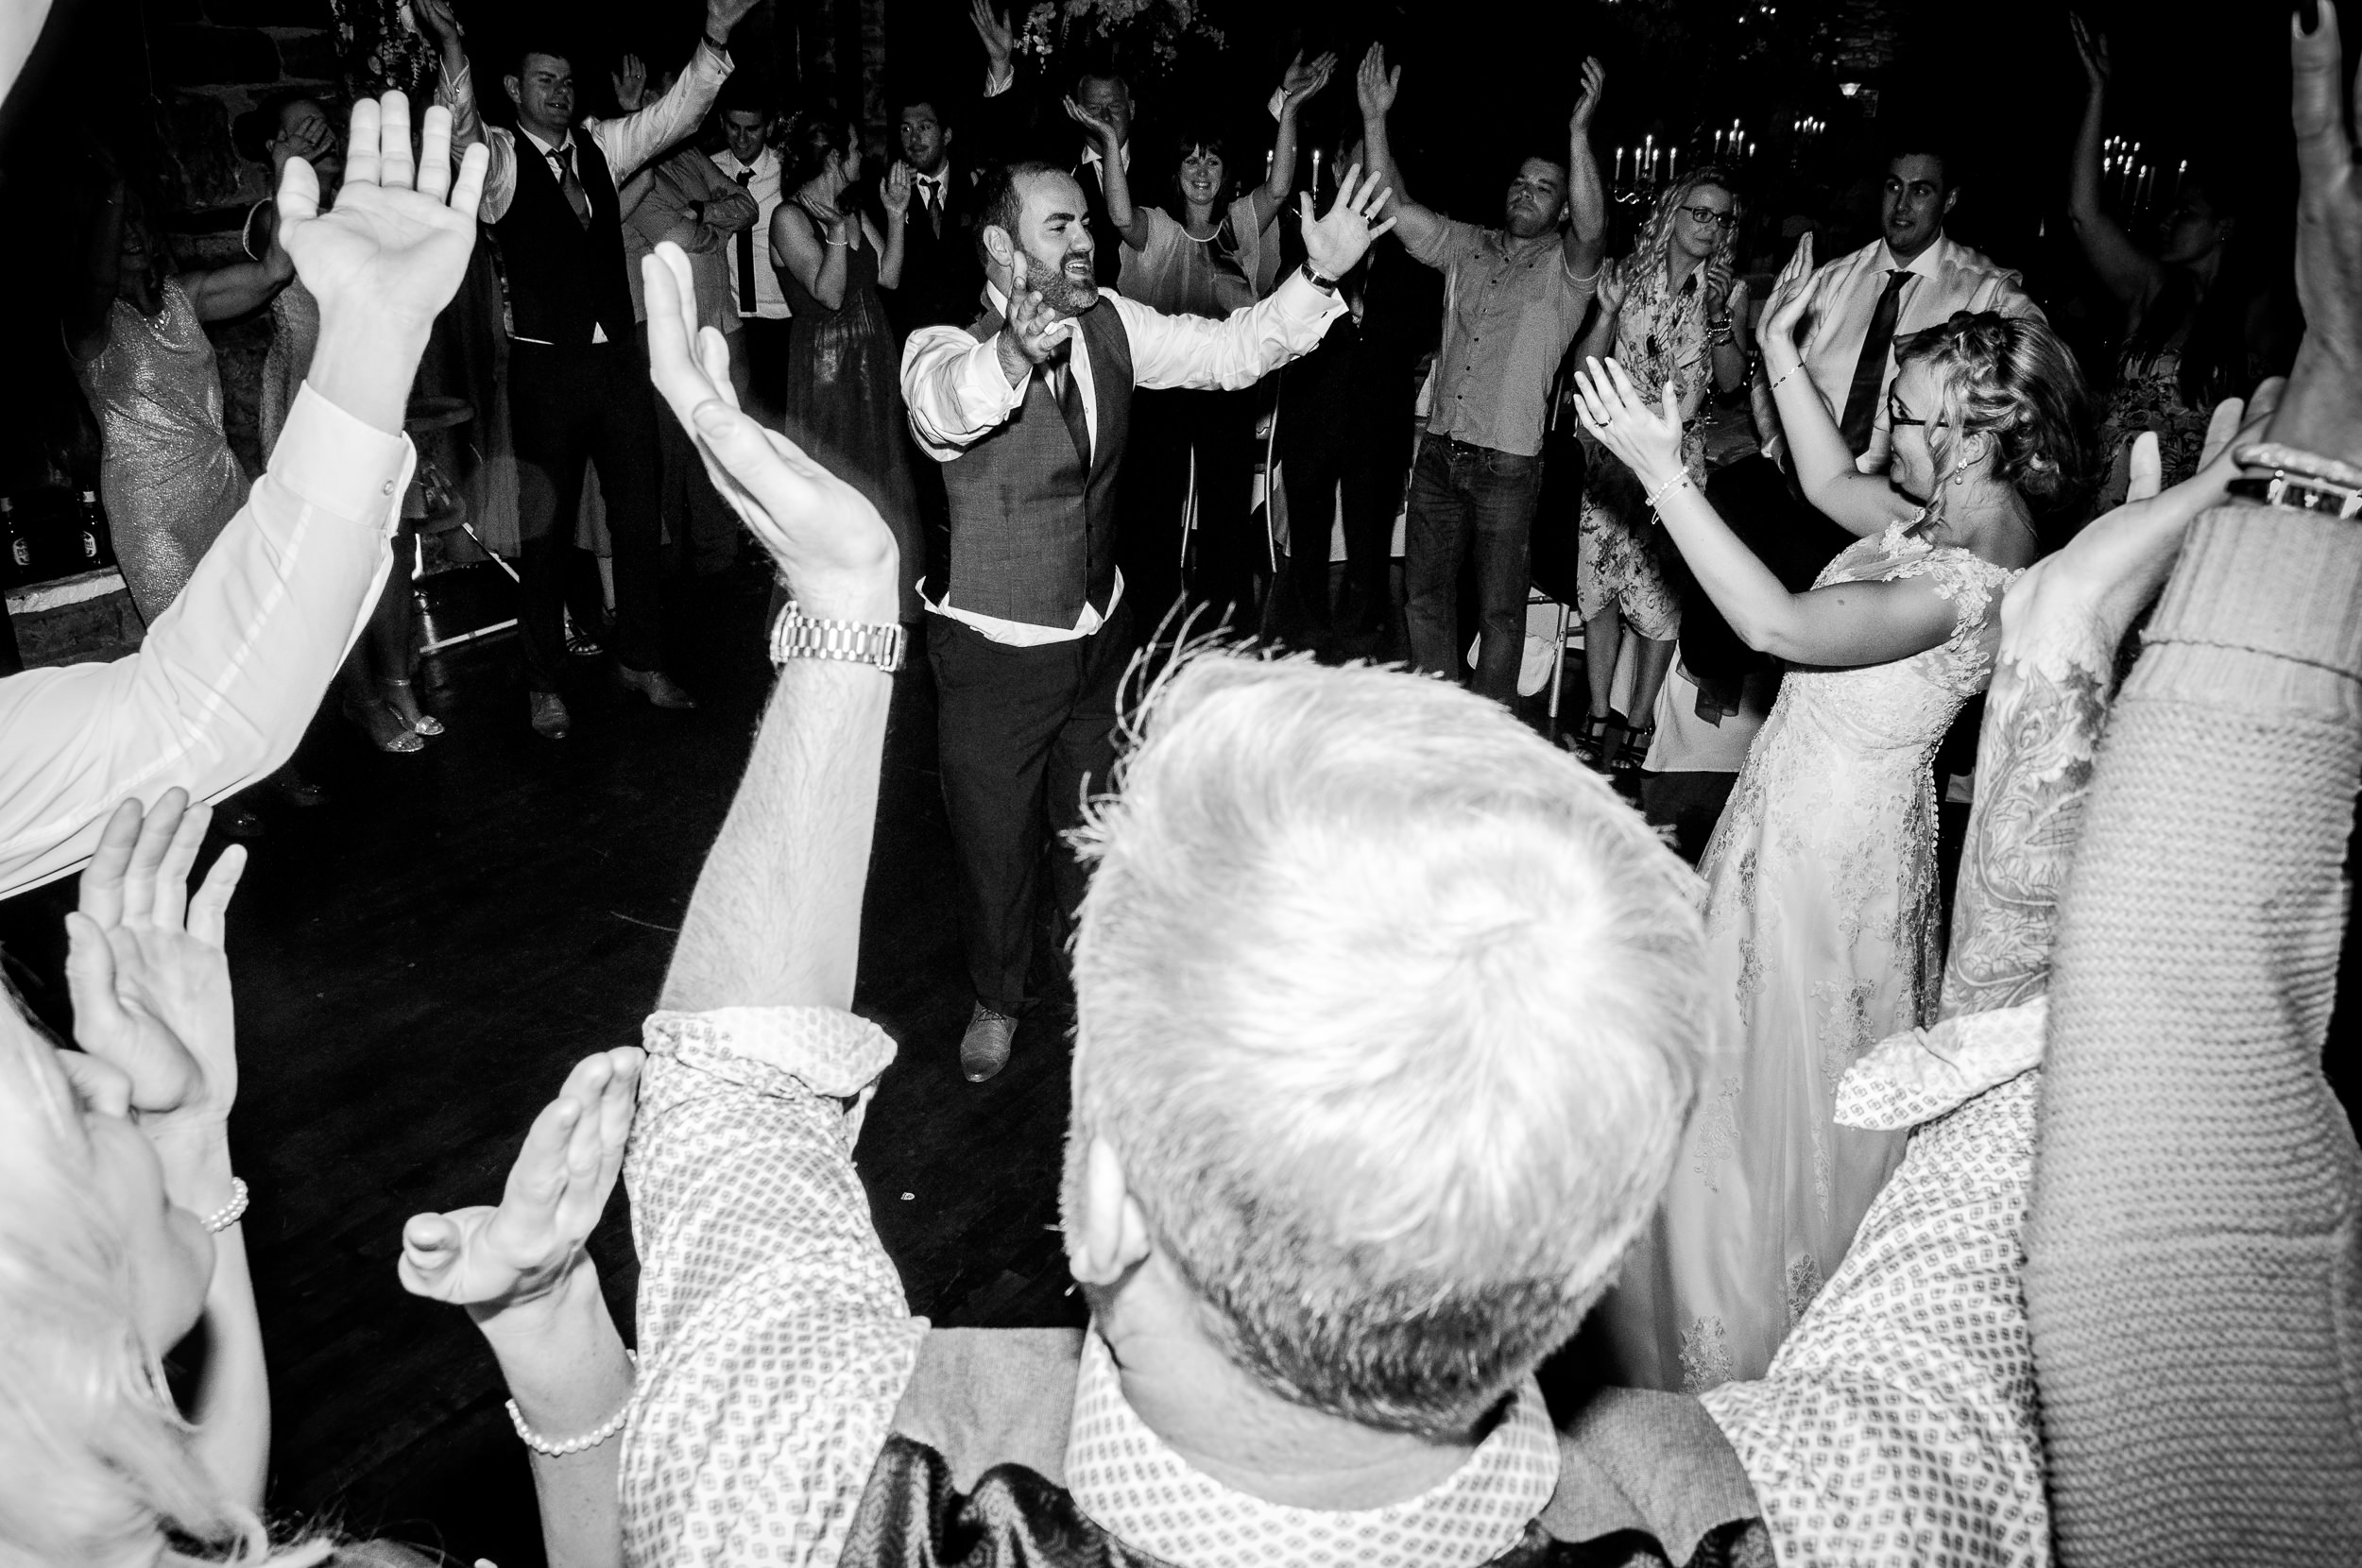 Black and White Wide Picture with Deep Fcous of Bride and Groom in the middle of the dancefloor with arms in the air encircled by their wedding guests at the end of the night. Cool as you like.